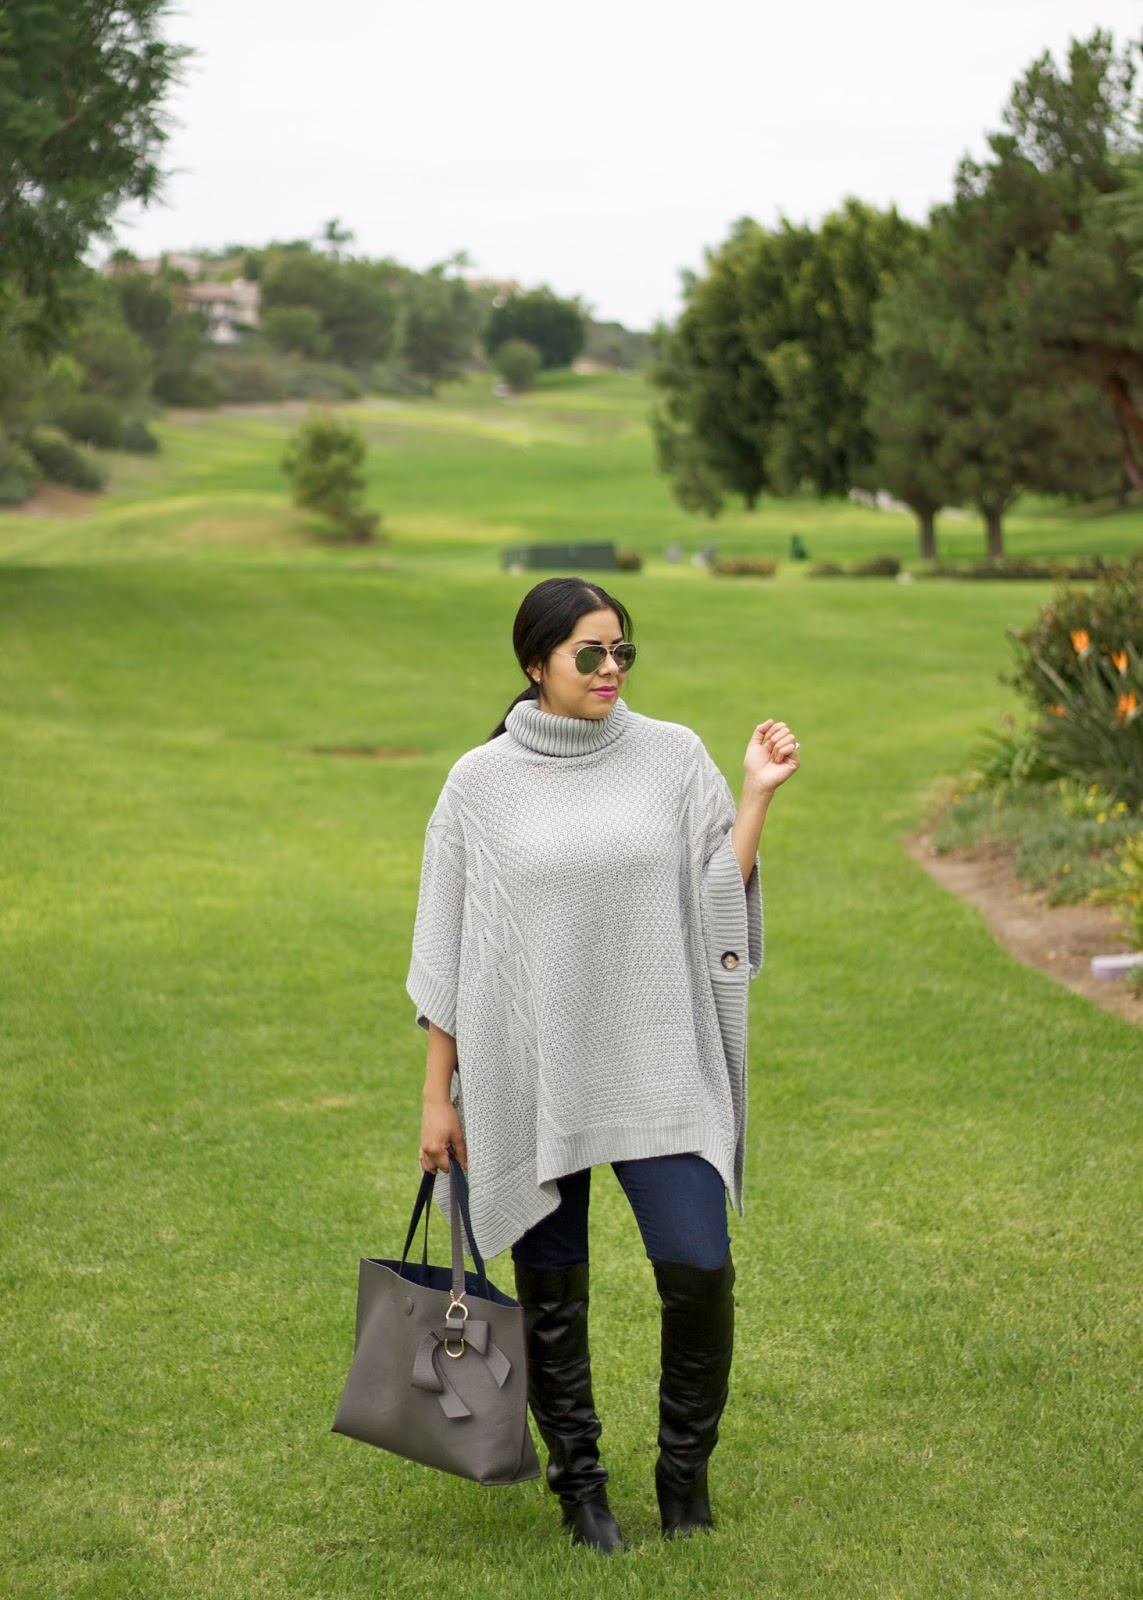 Poncho Turtleneck, san diego fashion blogger, san diego fall fashion 2015, san diego style blogger, gray turtleneck sweater